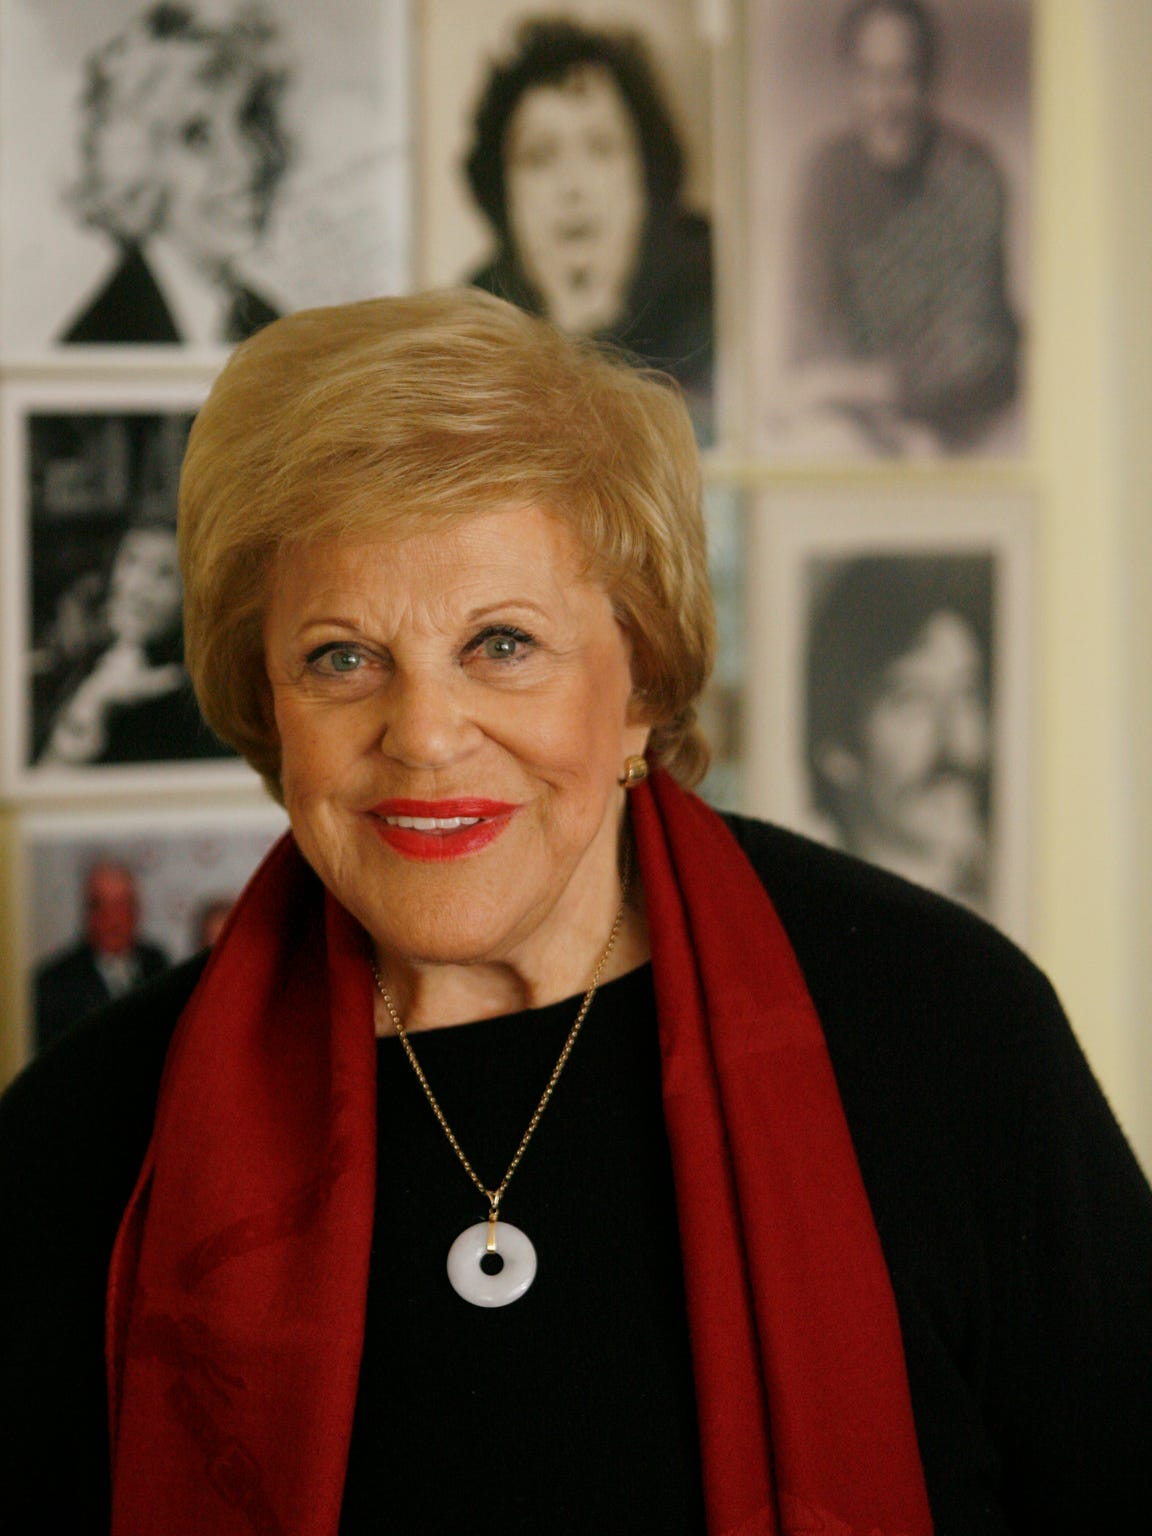 Kaye Ballard posed before an appearance at a Luminary Luncheon benefiting the Coachella Valley Repertory Theatre in her home town of Rancho Mirage.